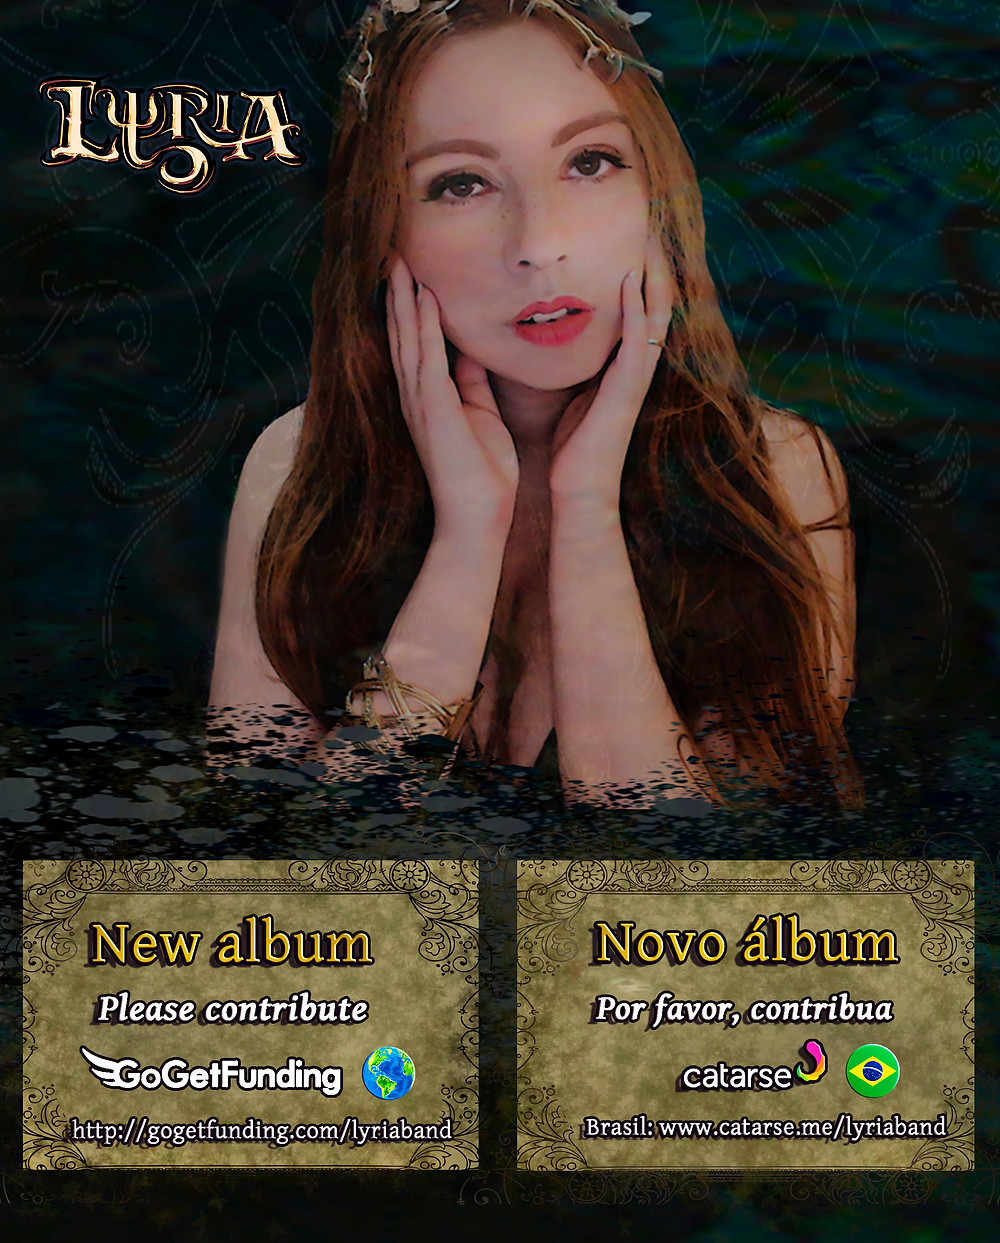 Lyria Immersion crowdfunding campaign